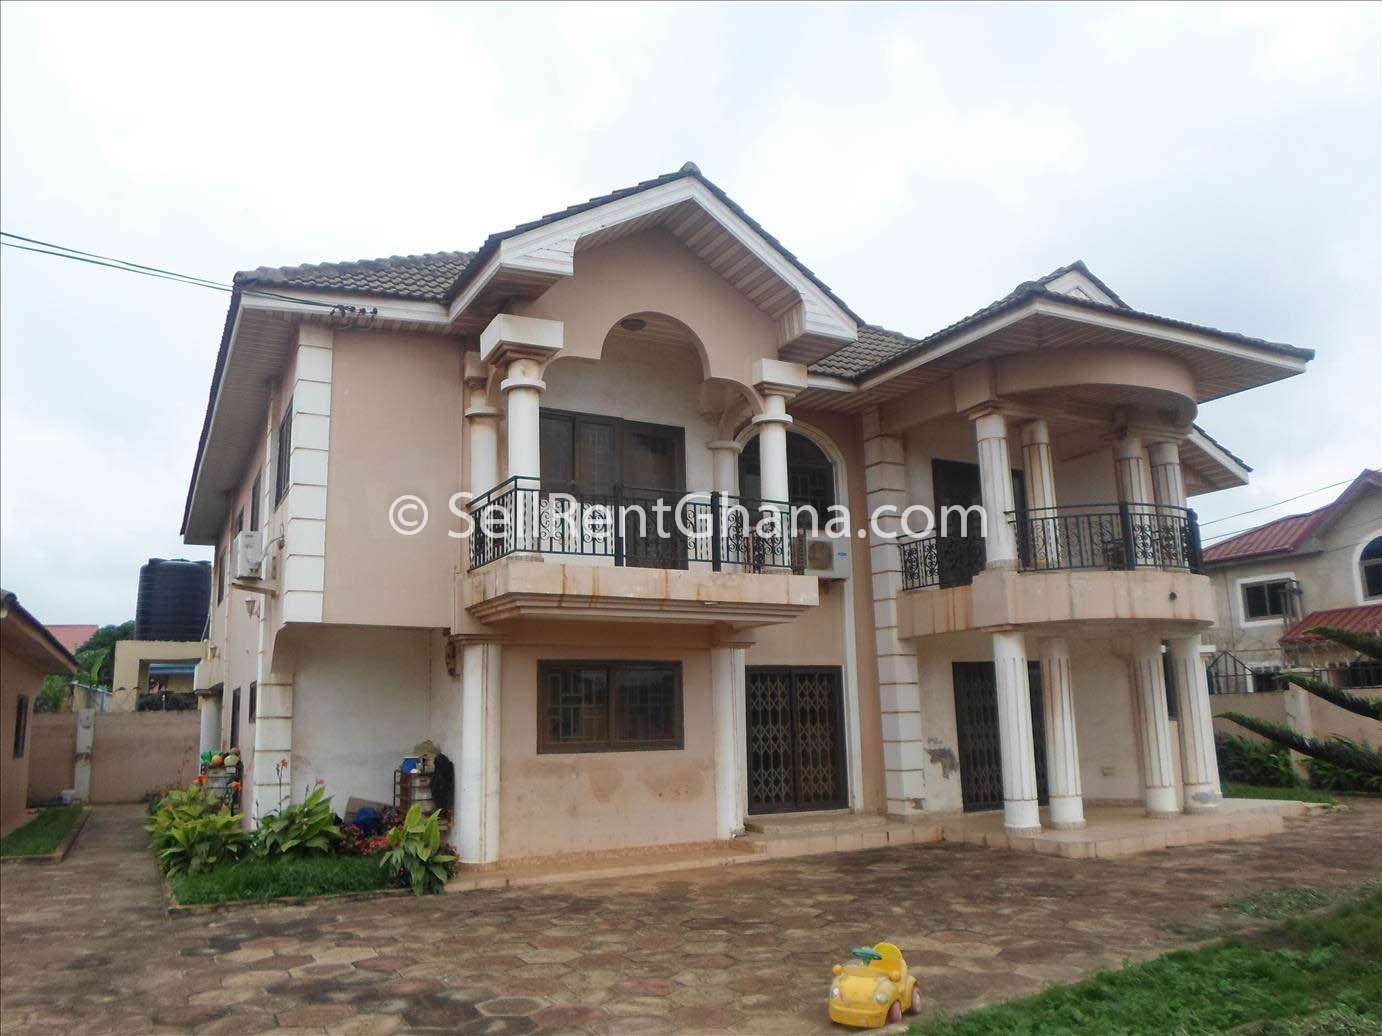 6 bedroom house for sale in spintex - 6 Bedroom House For Sale